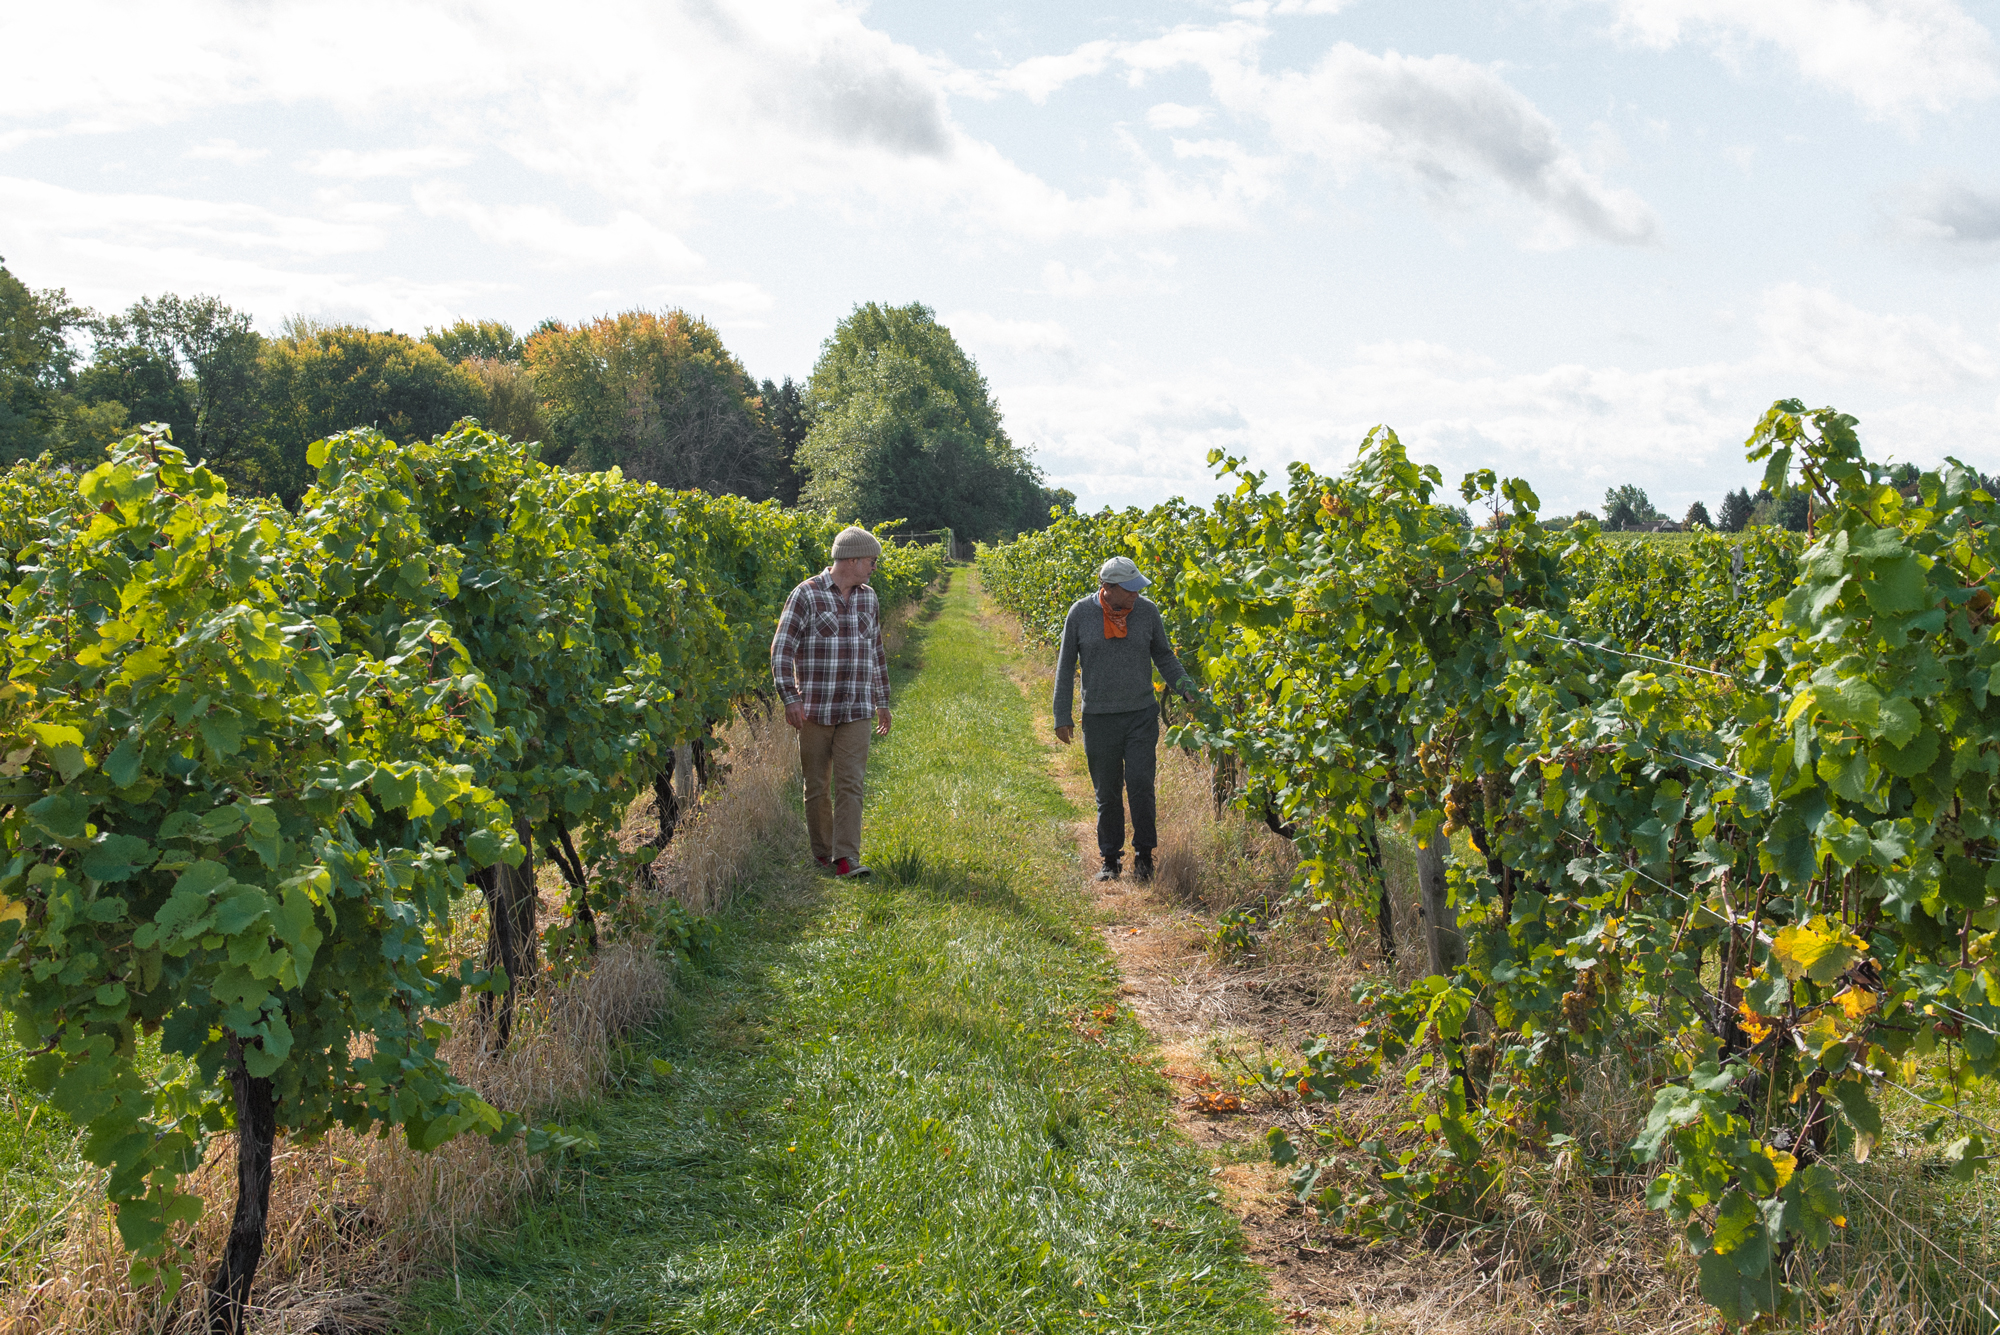 the author and his friend in a vineyard